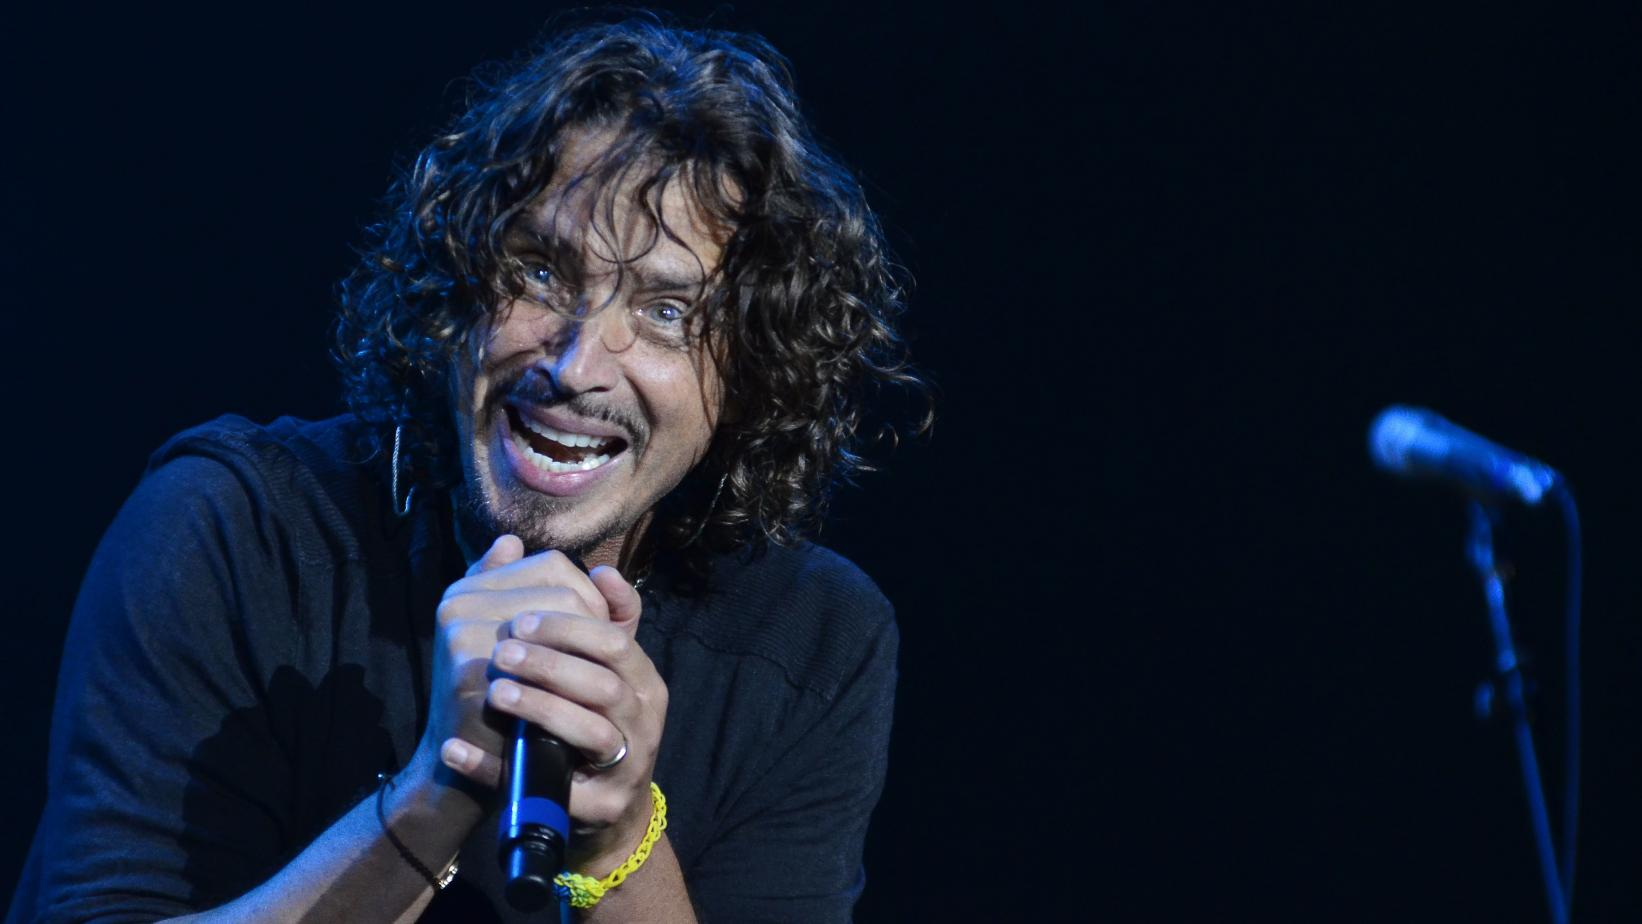 Chris Cornell performs with Soundgarden in 2014